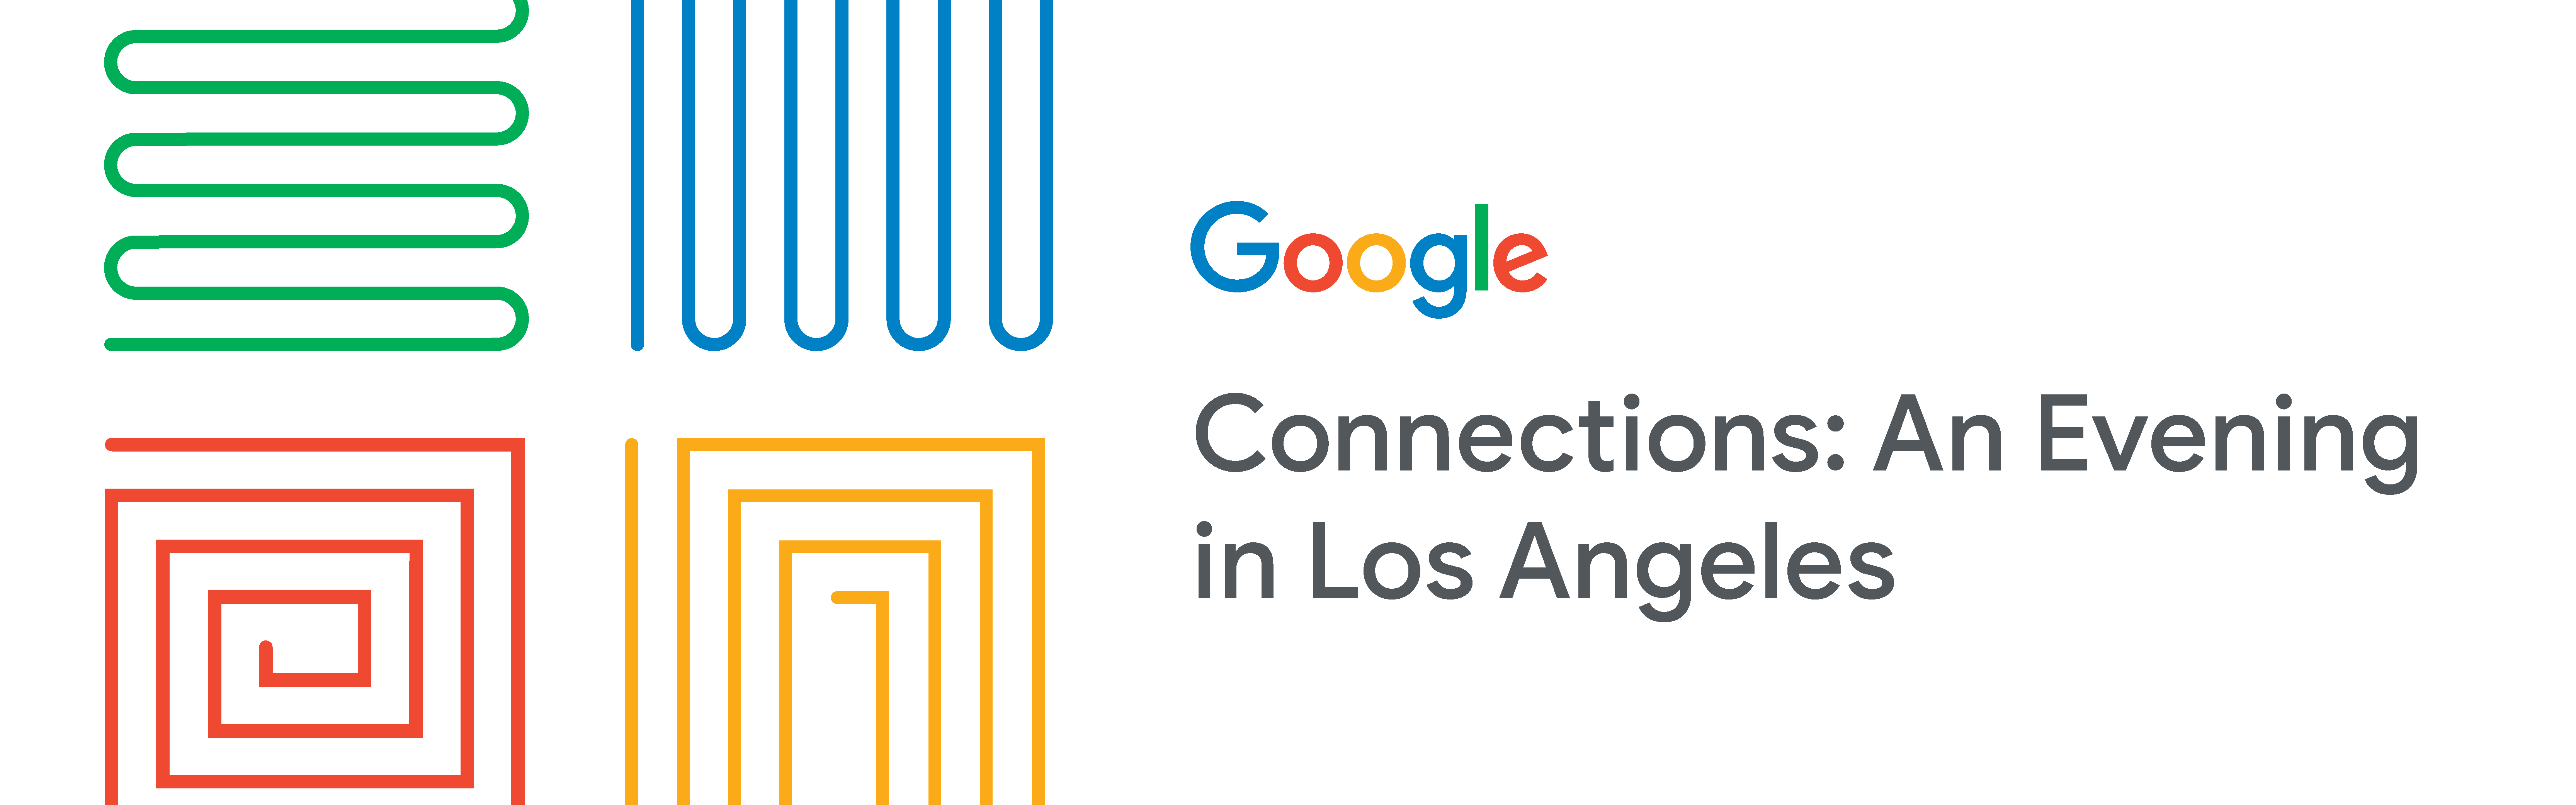 Google Connections: An Evening in Los Angeles